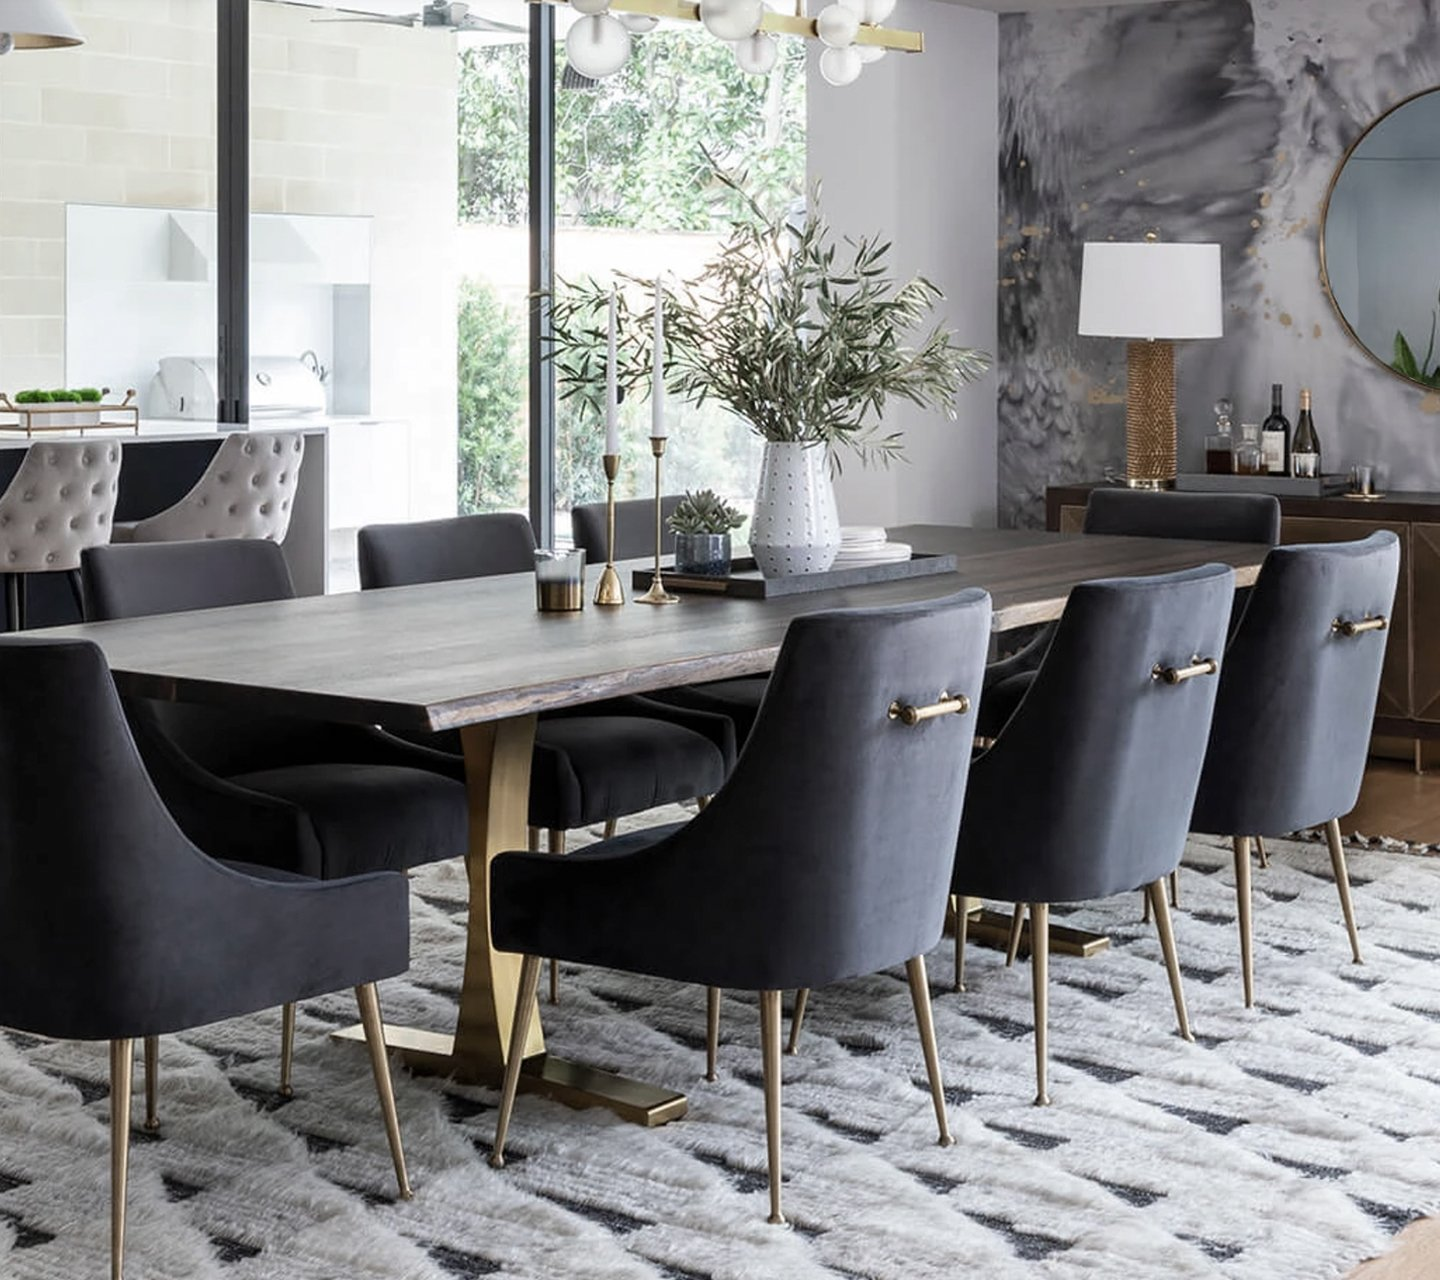 High Fashion Home dining area